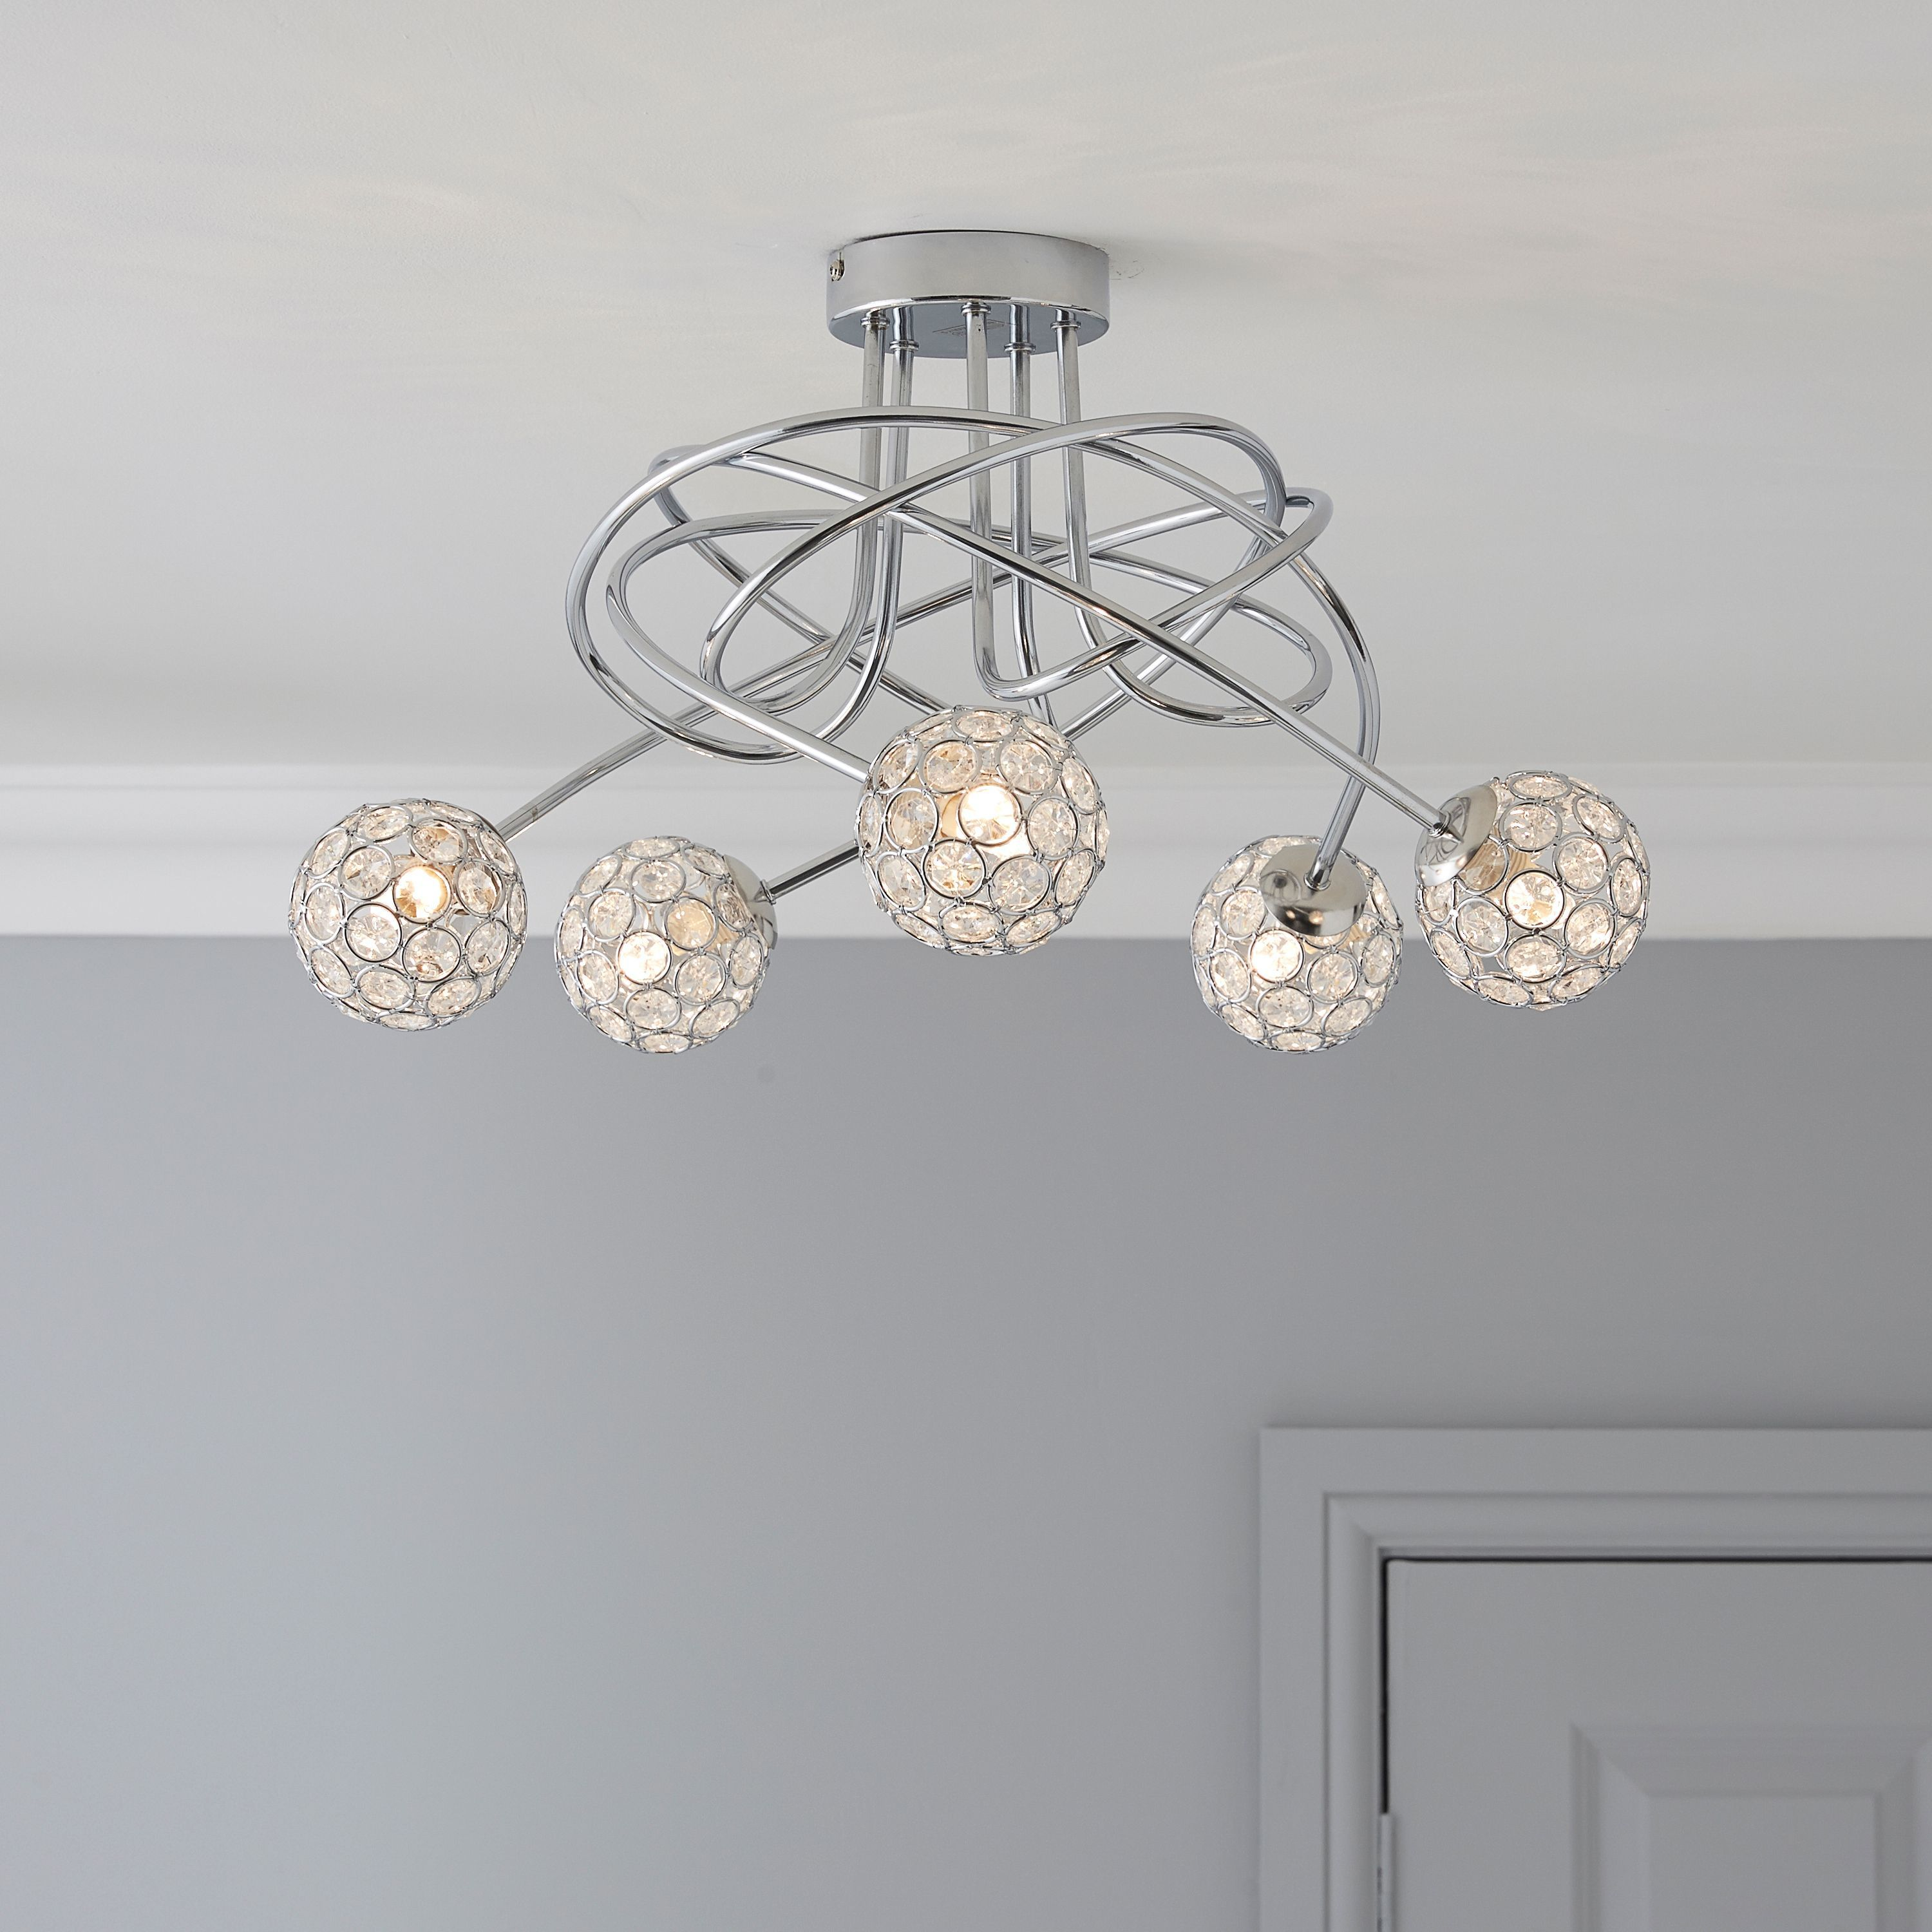 Lopez Crystal Circle Chrome Effect 5 Lamp Ceiling Light